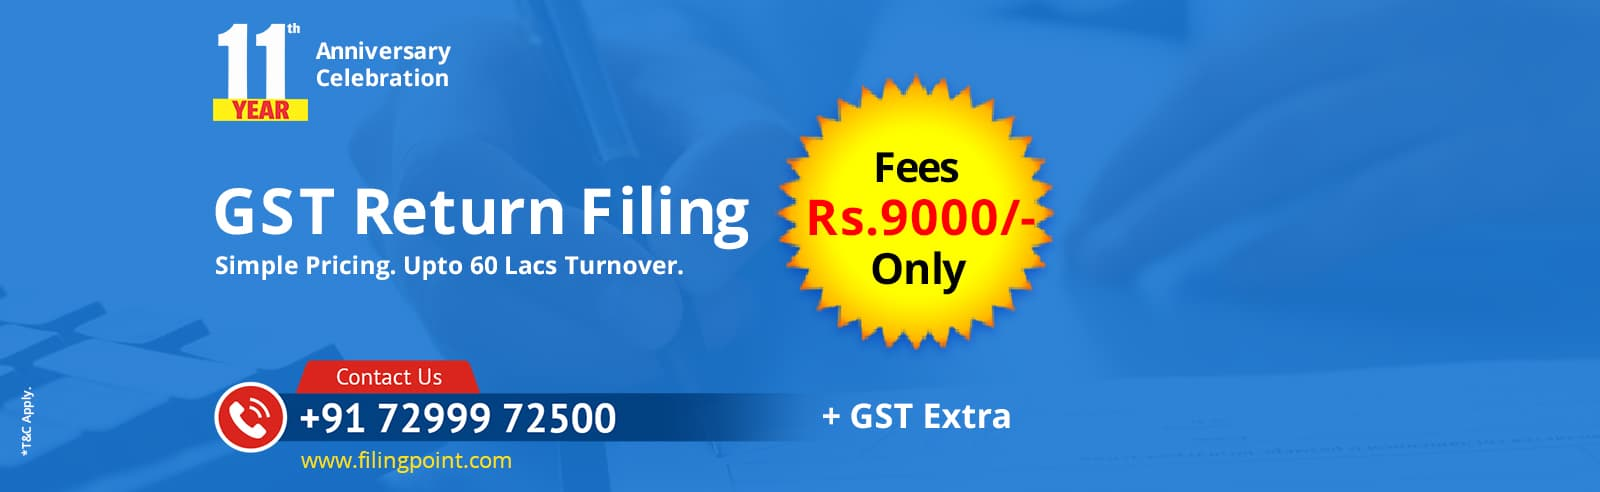 GST Filing Services Near Me Chennai Anna Nagar West